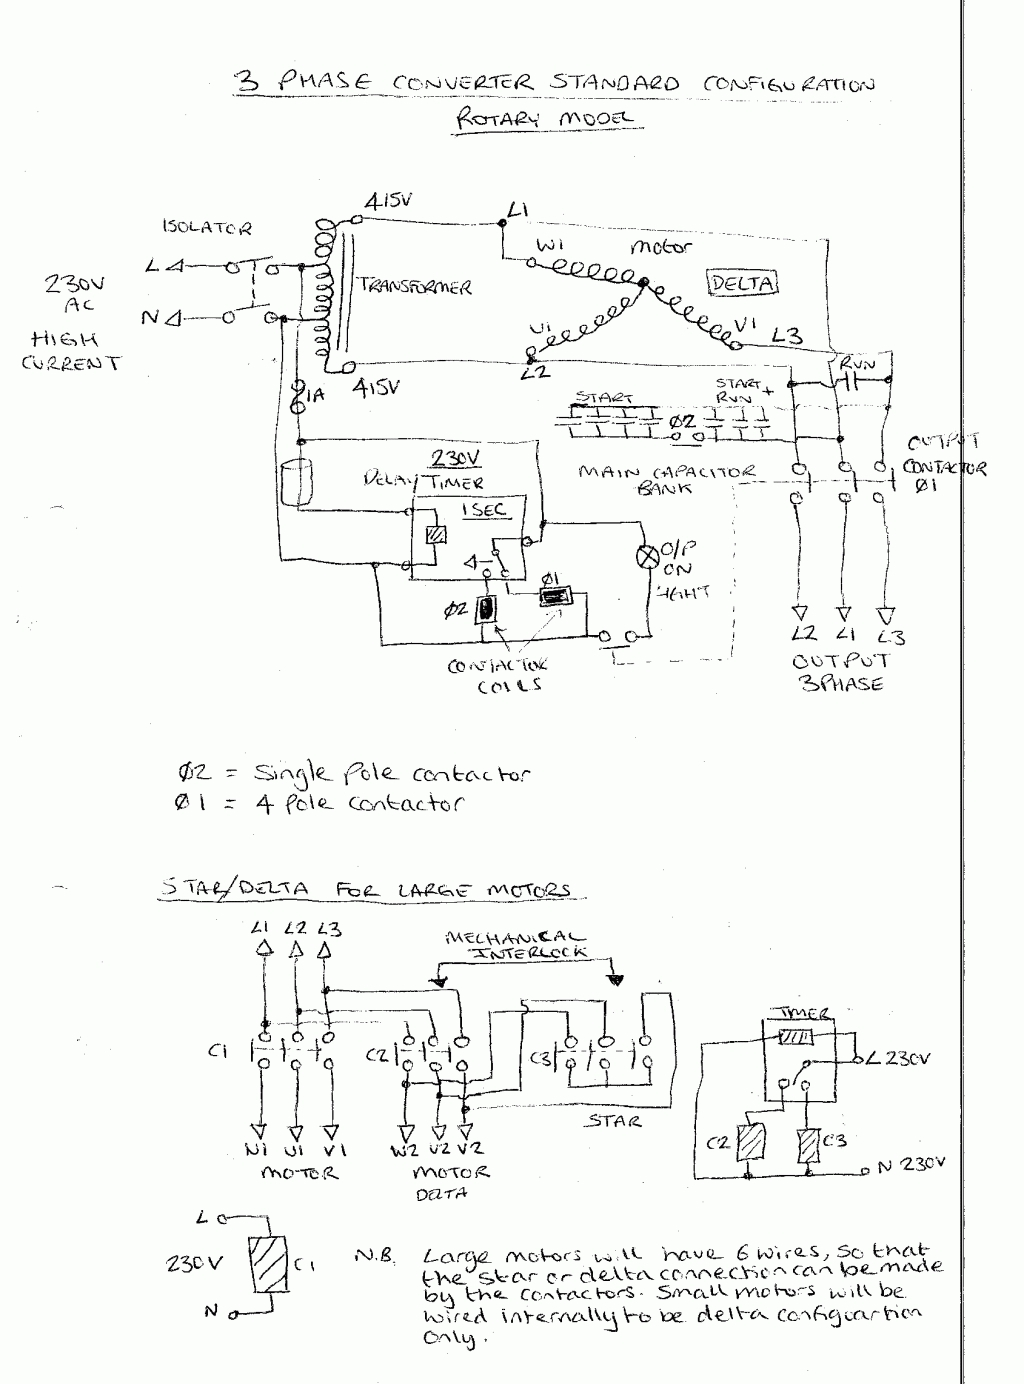 static phase converter wiring diagram free wiring diagram